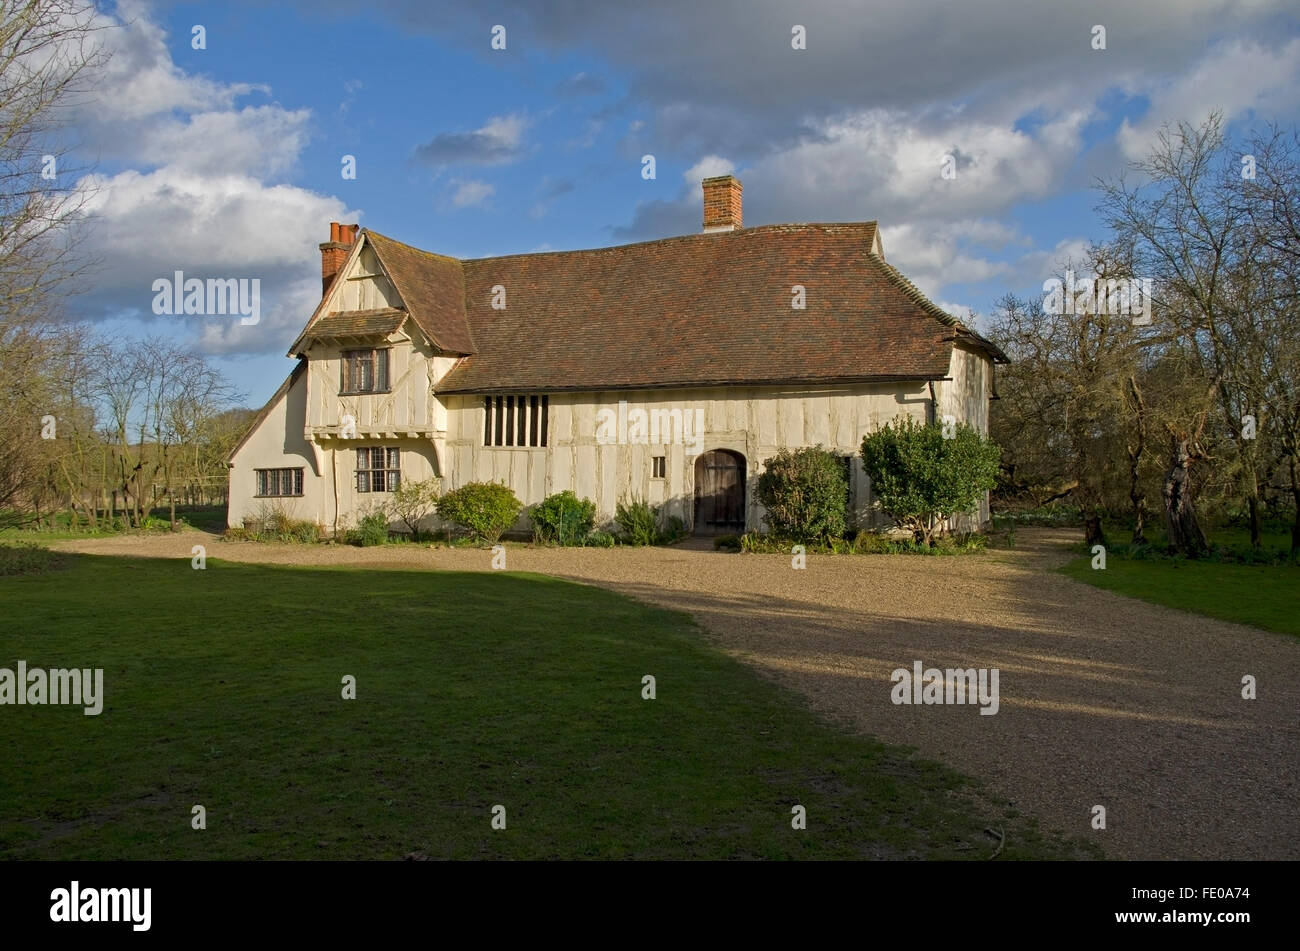 Medieval Hall House used as a farmhouse until early 1900s. Substantially restored in 1959. The oak timbers have - Stock Image